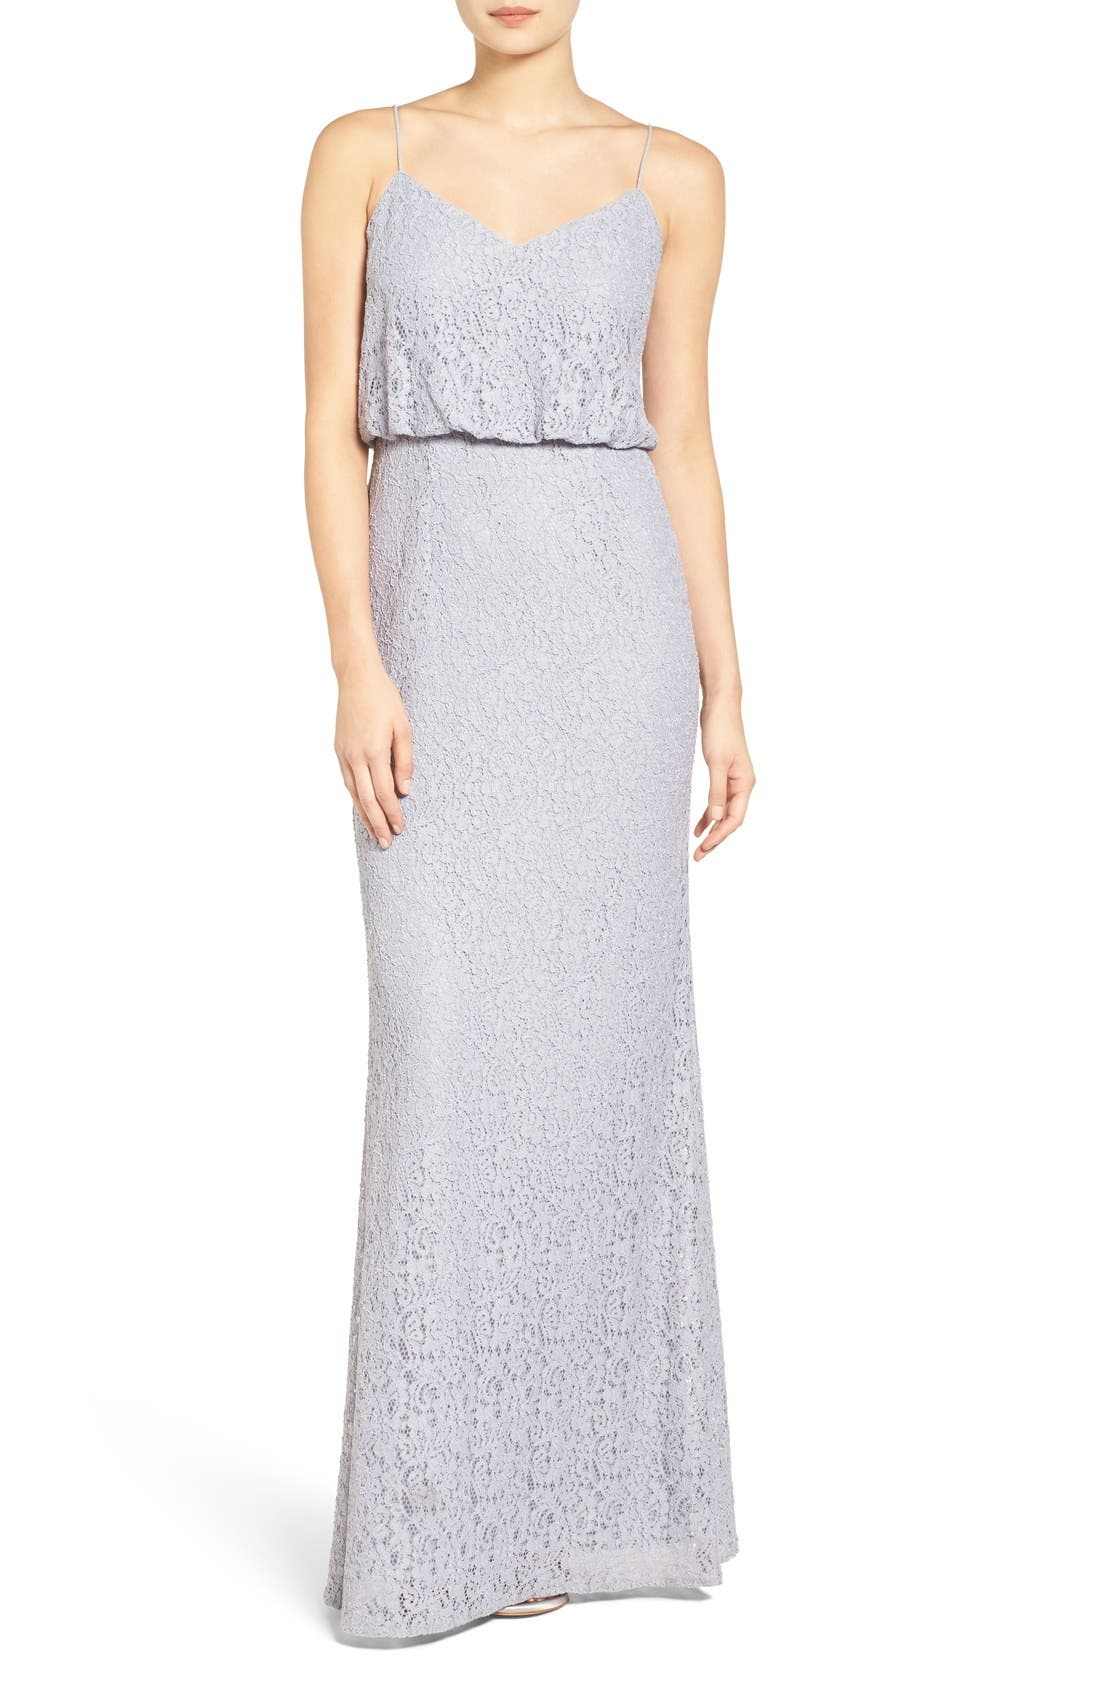 Adrianna Papell Lace Blouson Gown (Regular & Petite)